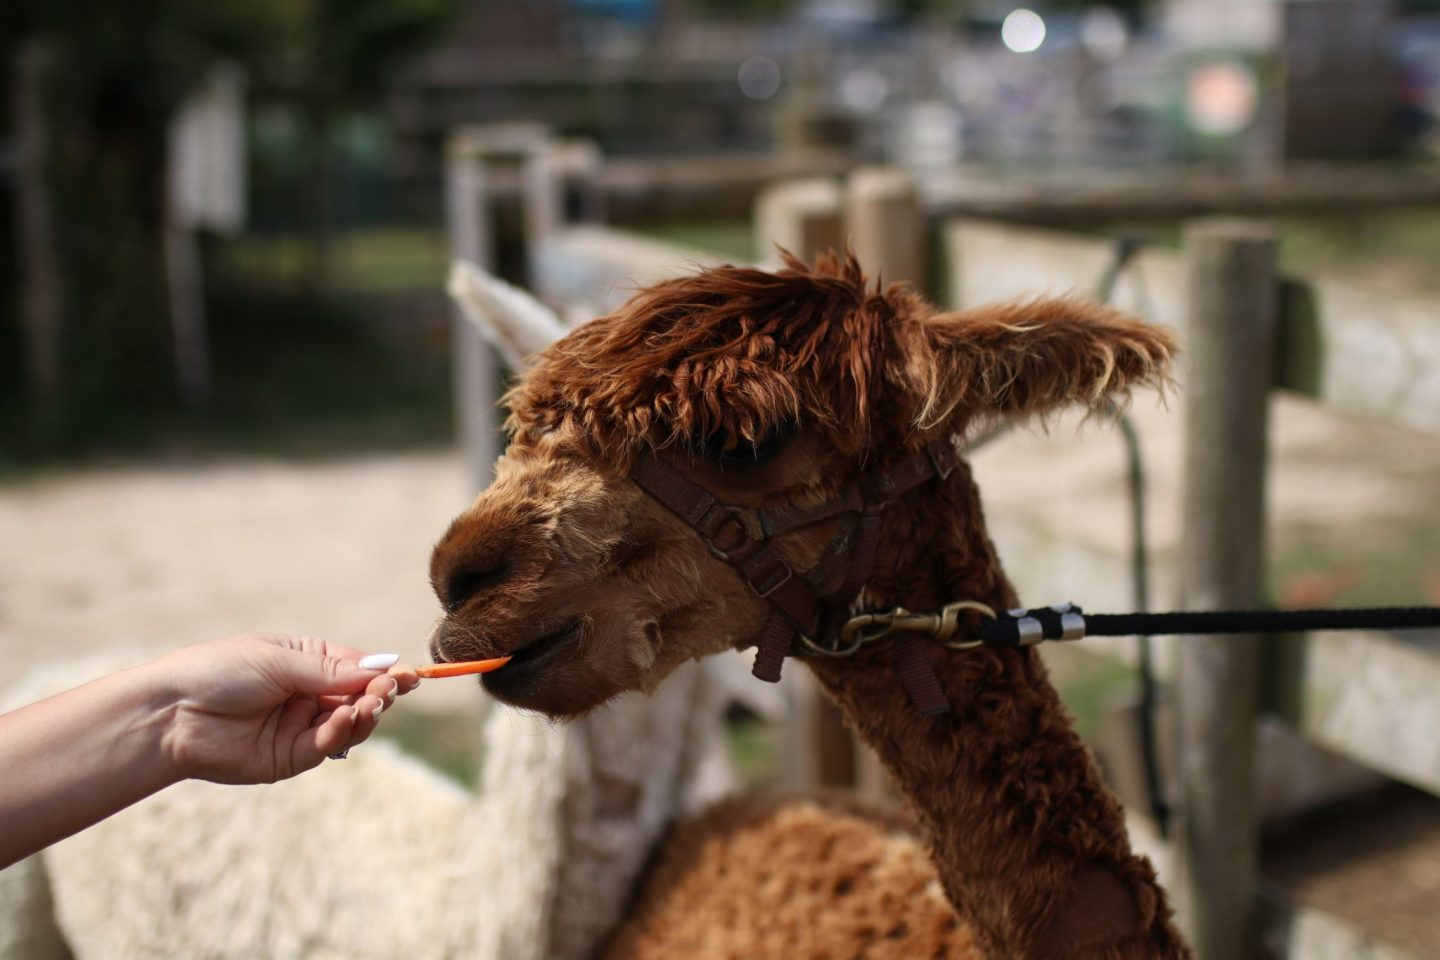 Katie Heath, KALANCHOE, Isle of Wight, The Alpaca Farm